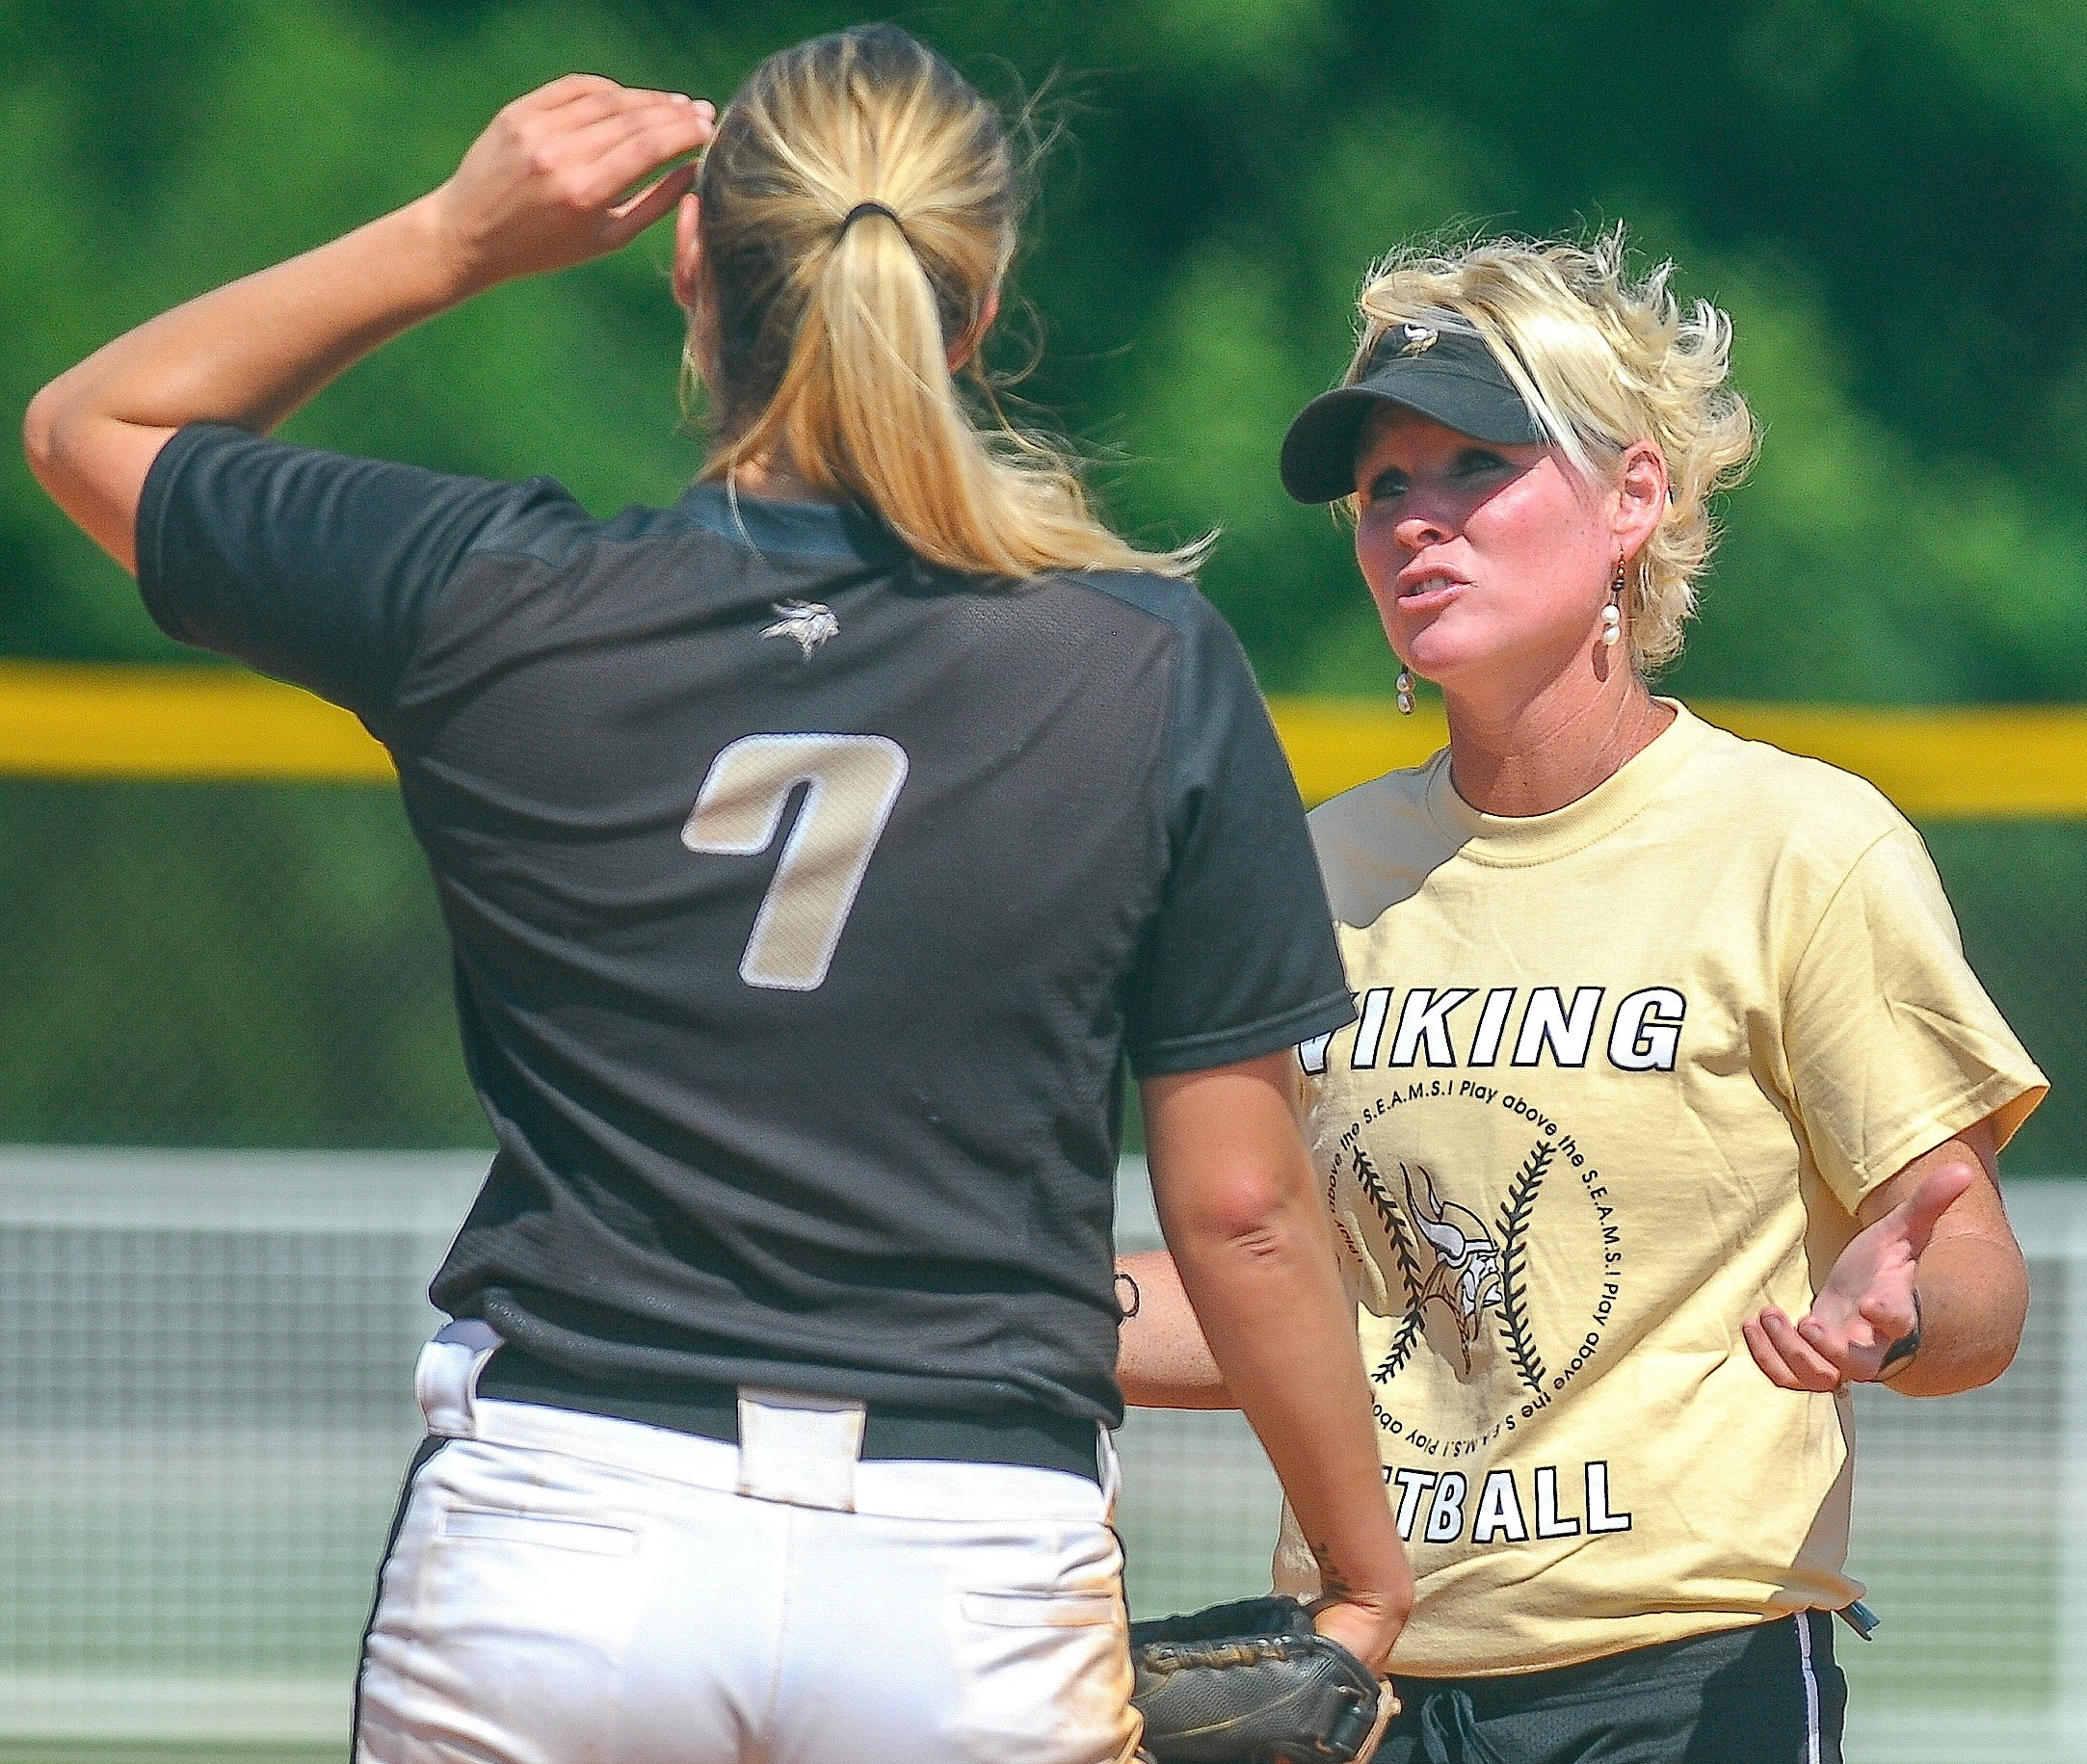 Walker softball coach Brandi Hall, right, talks with pitcher Mabry Norris (7) during their game against Chelsea at the State Softball Tournament in Montgomery on Wednesday. The Lady Vikings were eliminated from the double-elimination tournament, losing to Chelsea (4-3) and Northview (3-2).